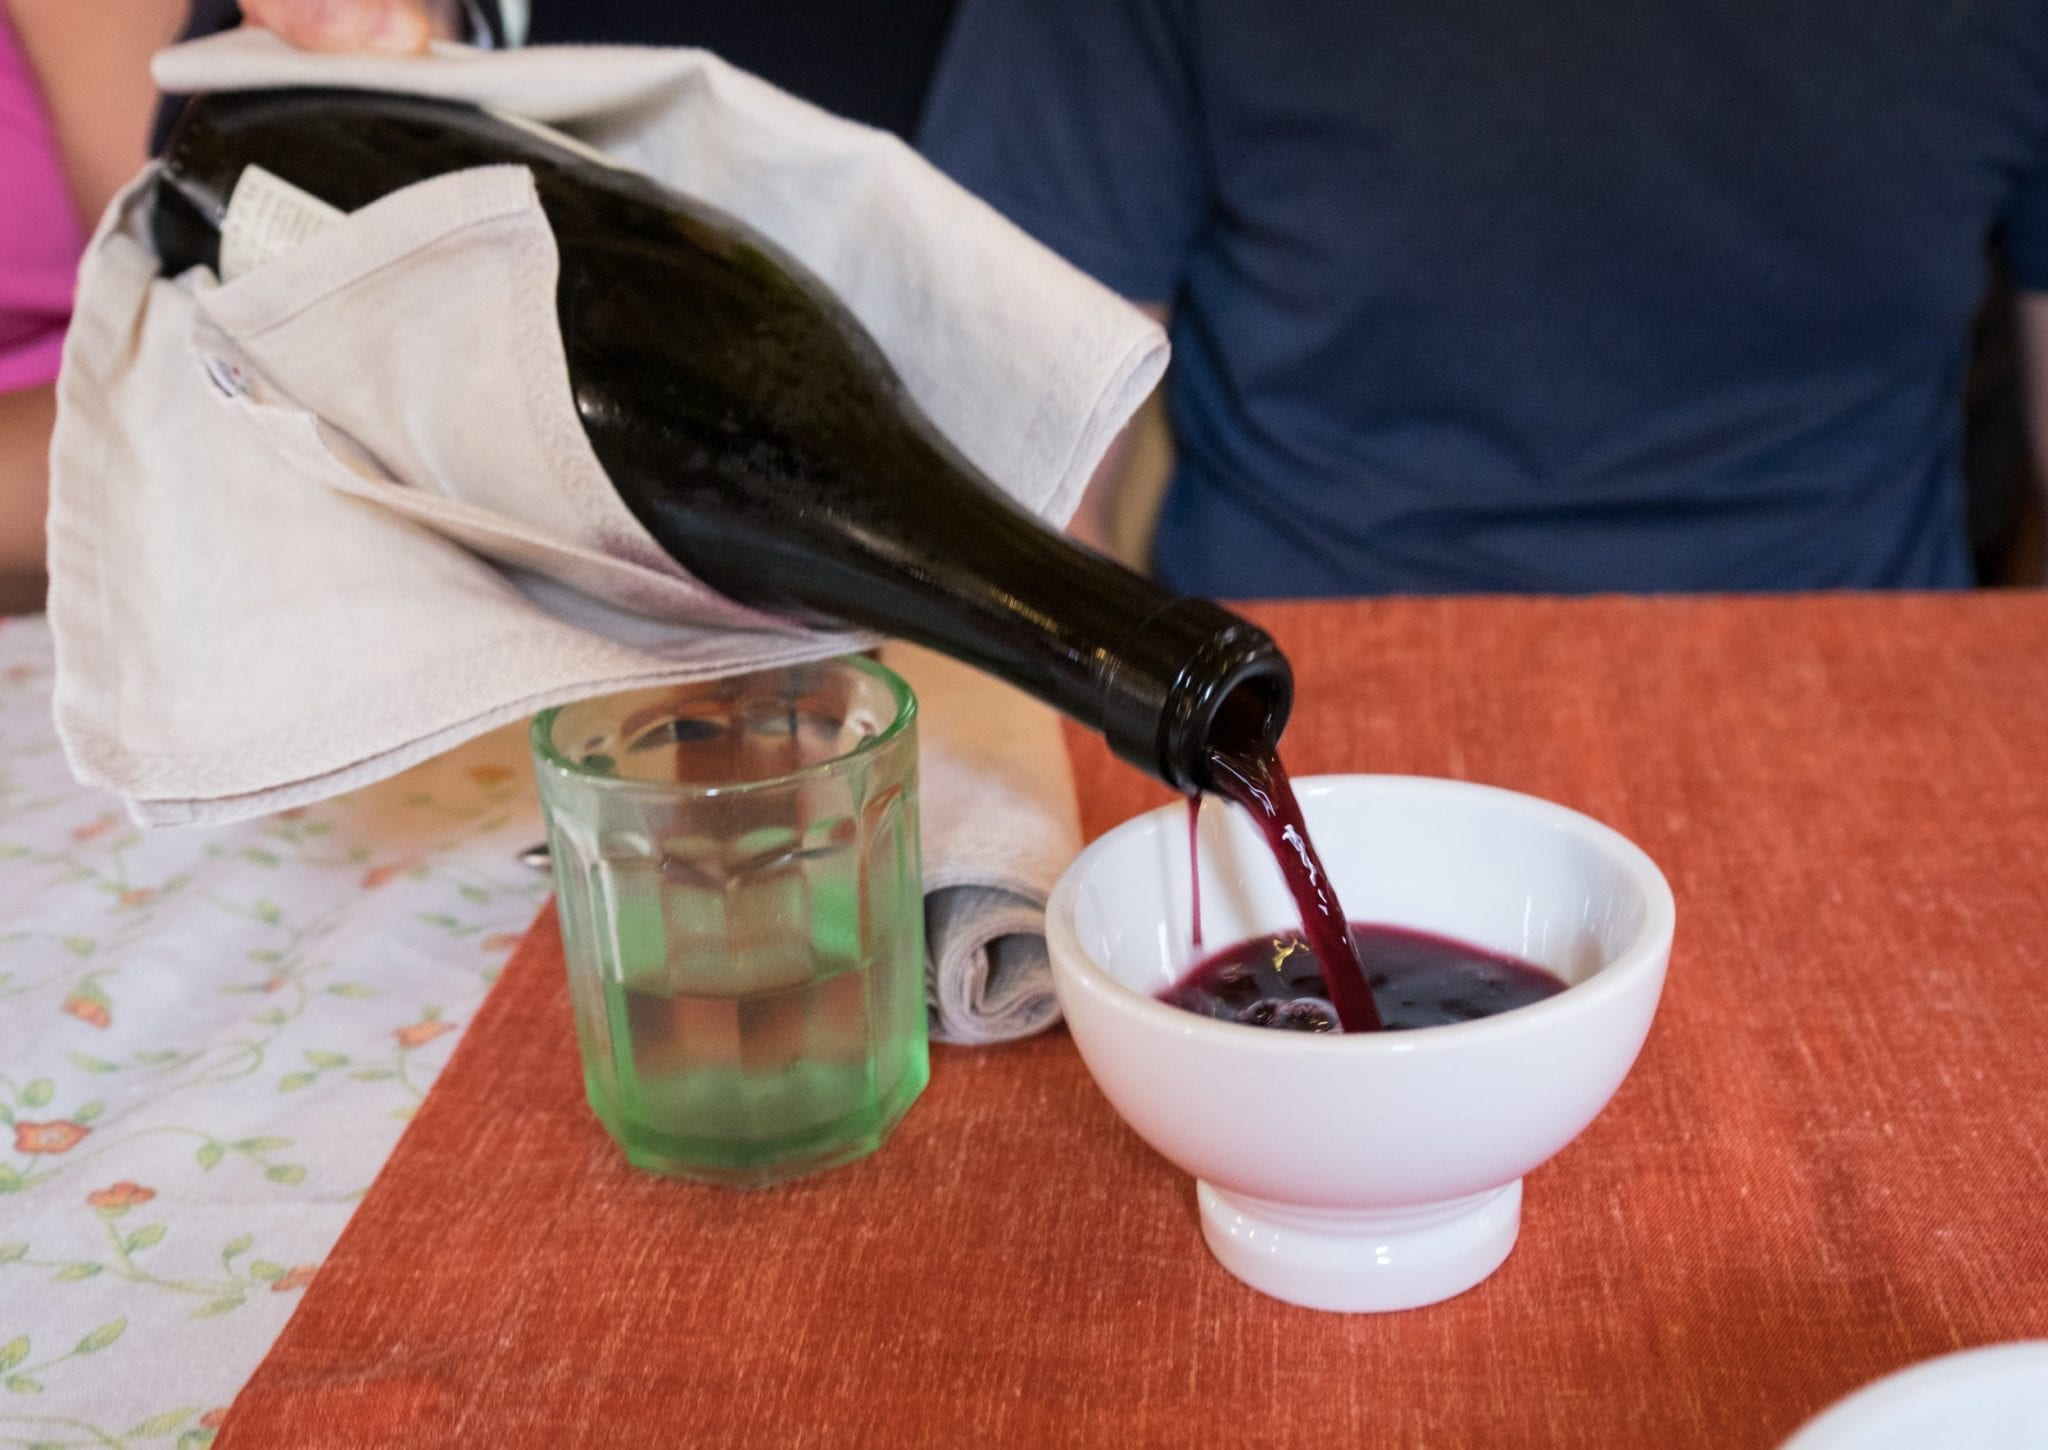 A bottle of red wine being poured into a small white bowl for drinking.